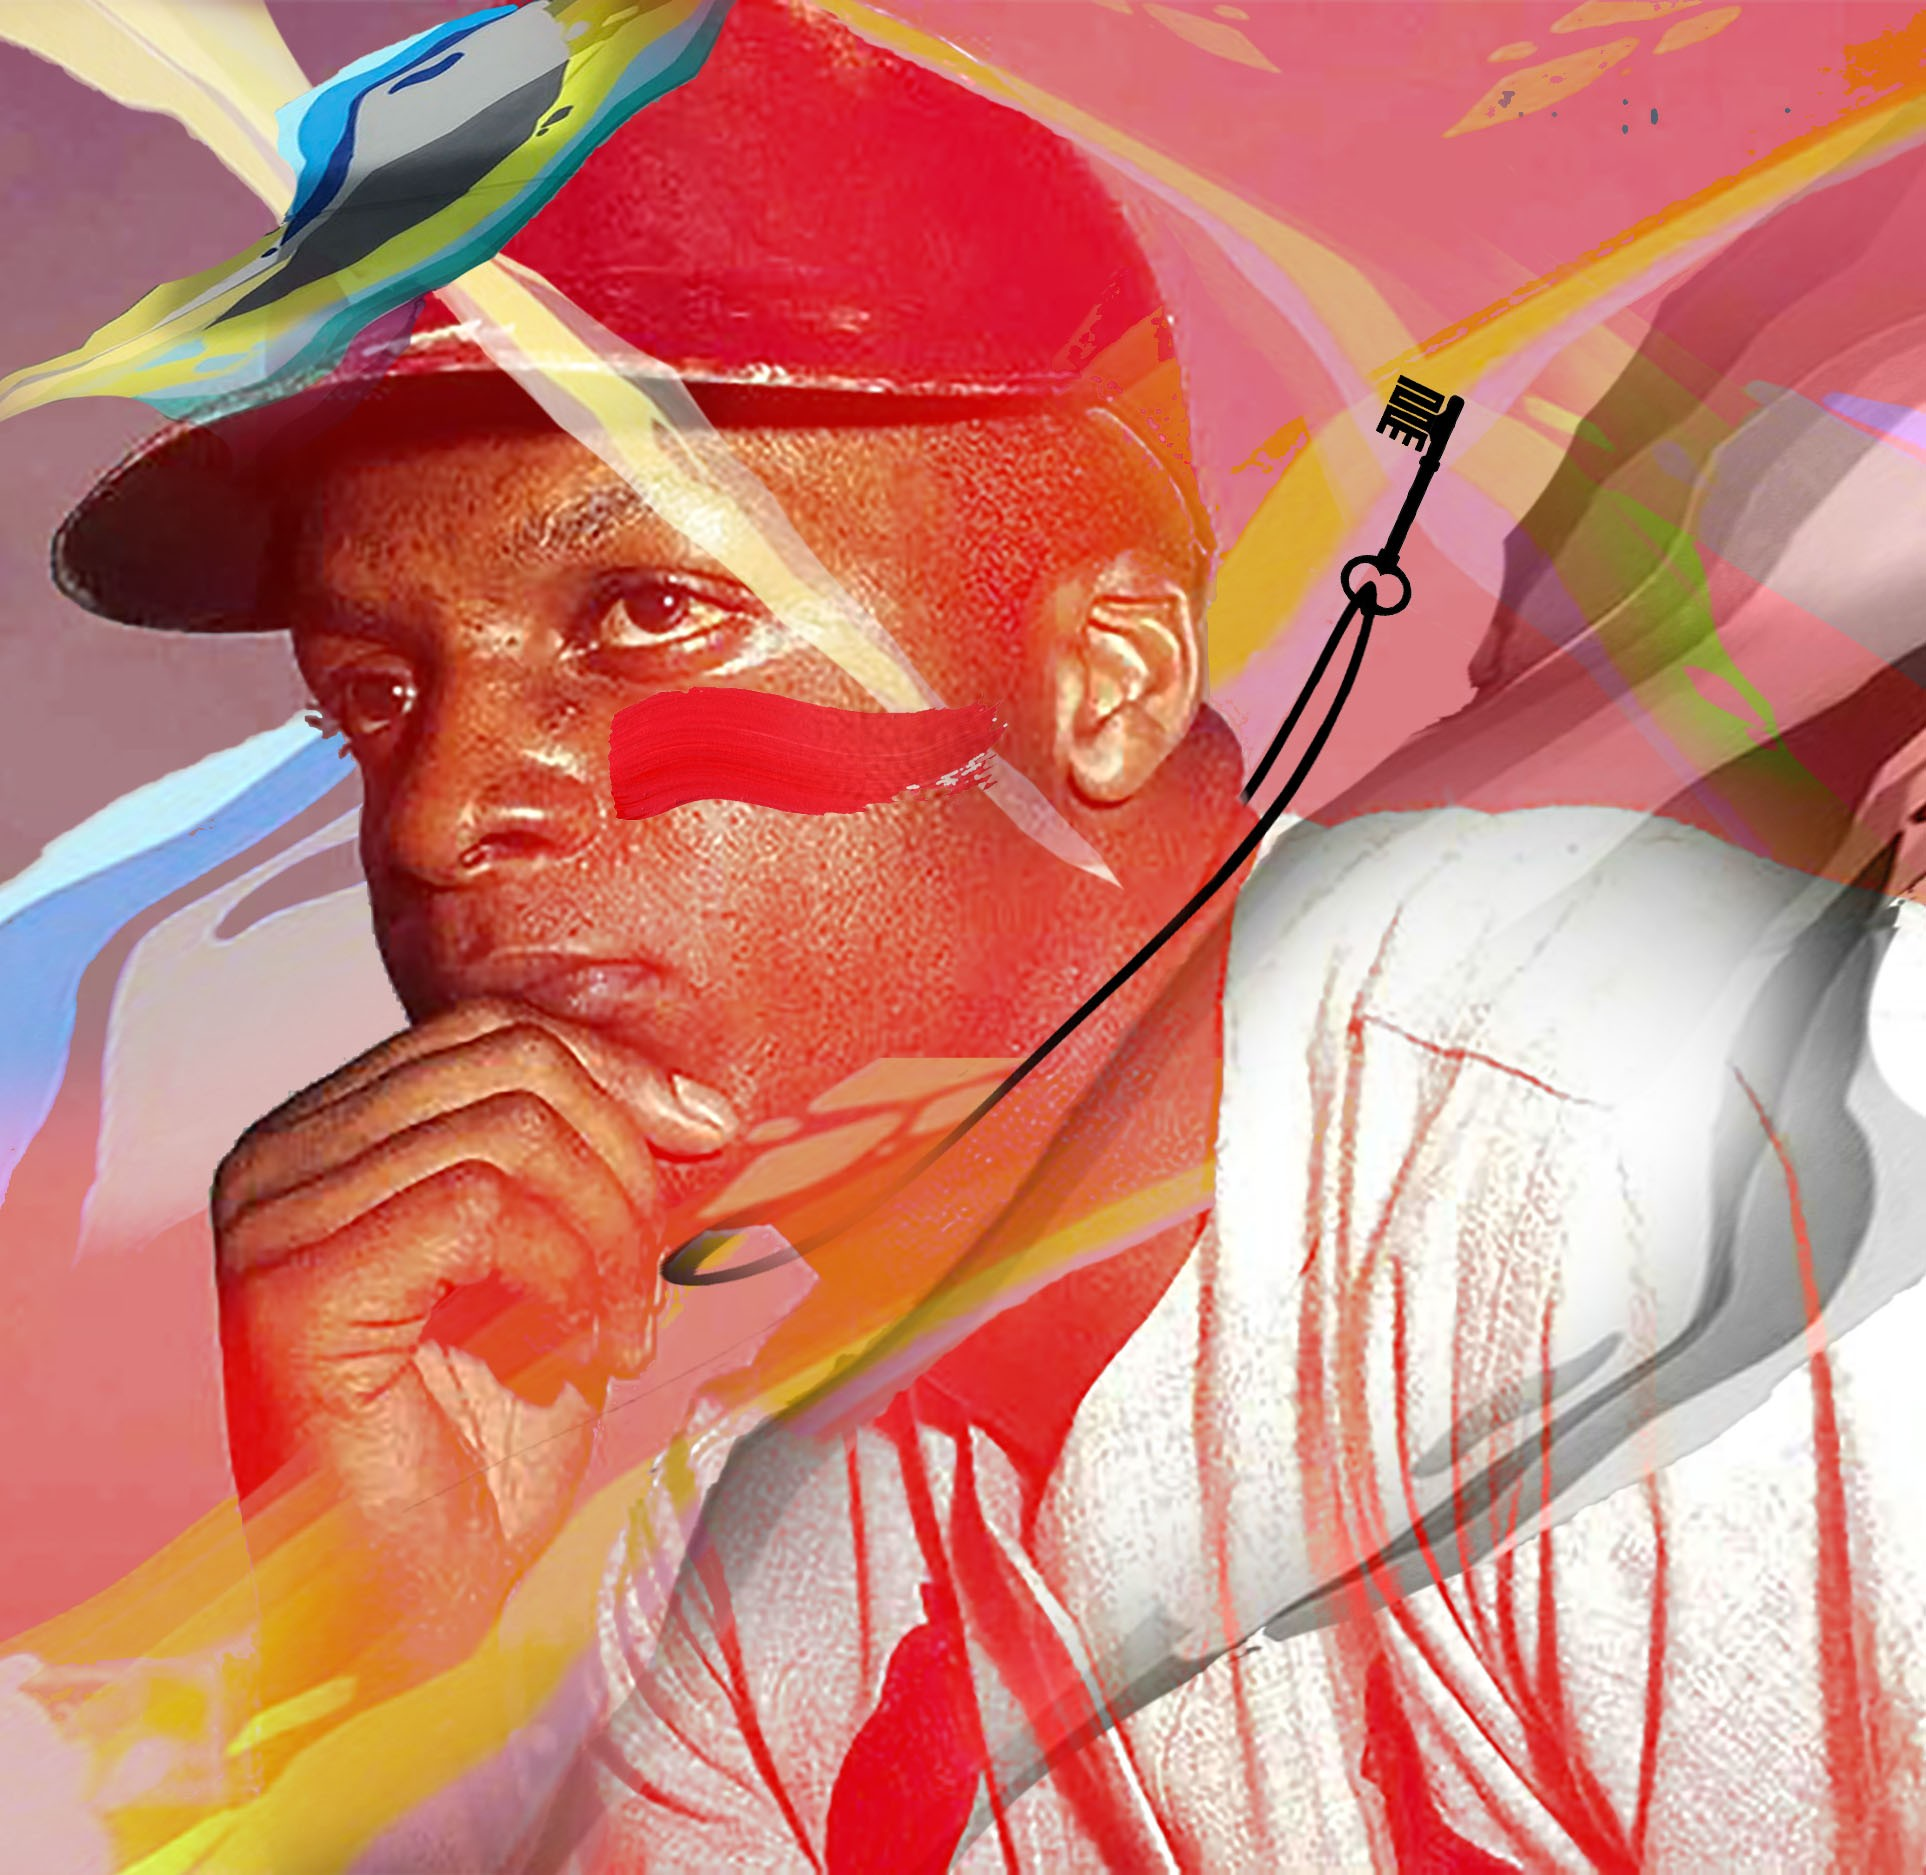 Colorful illustration of Curt Flood